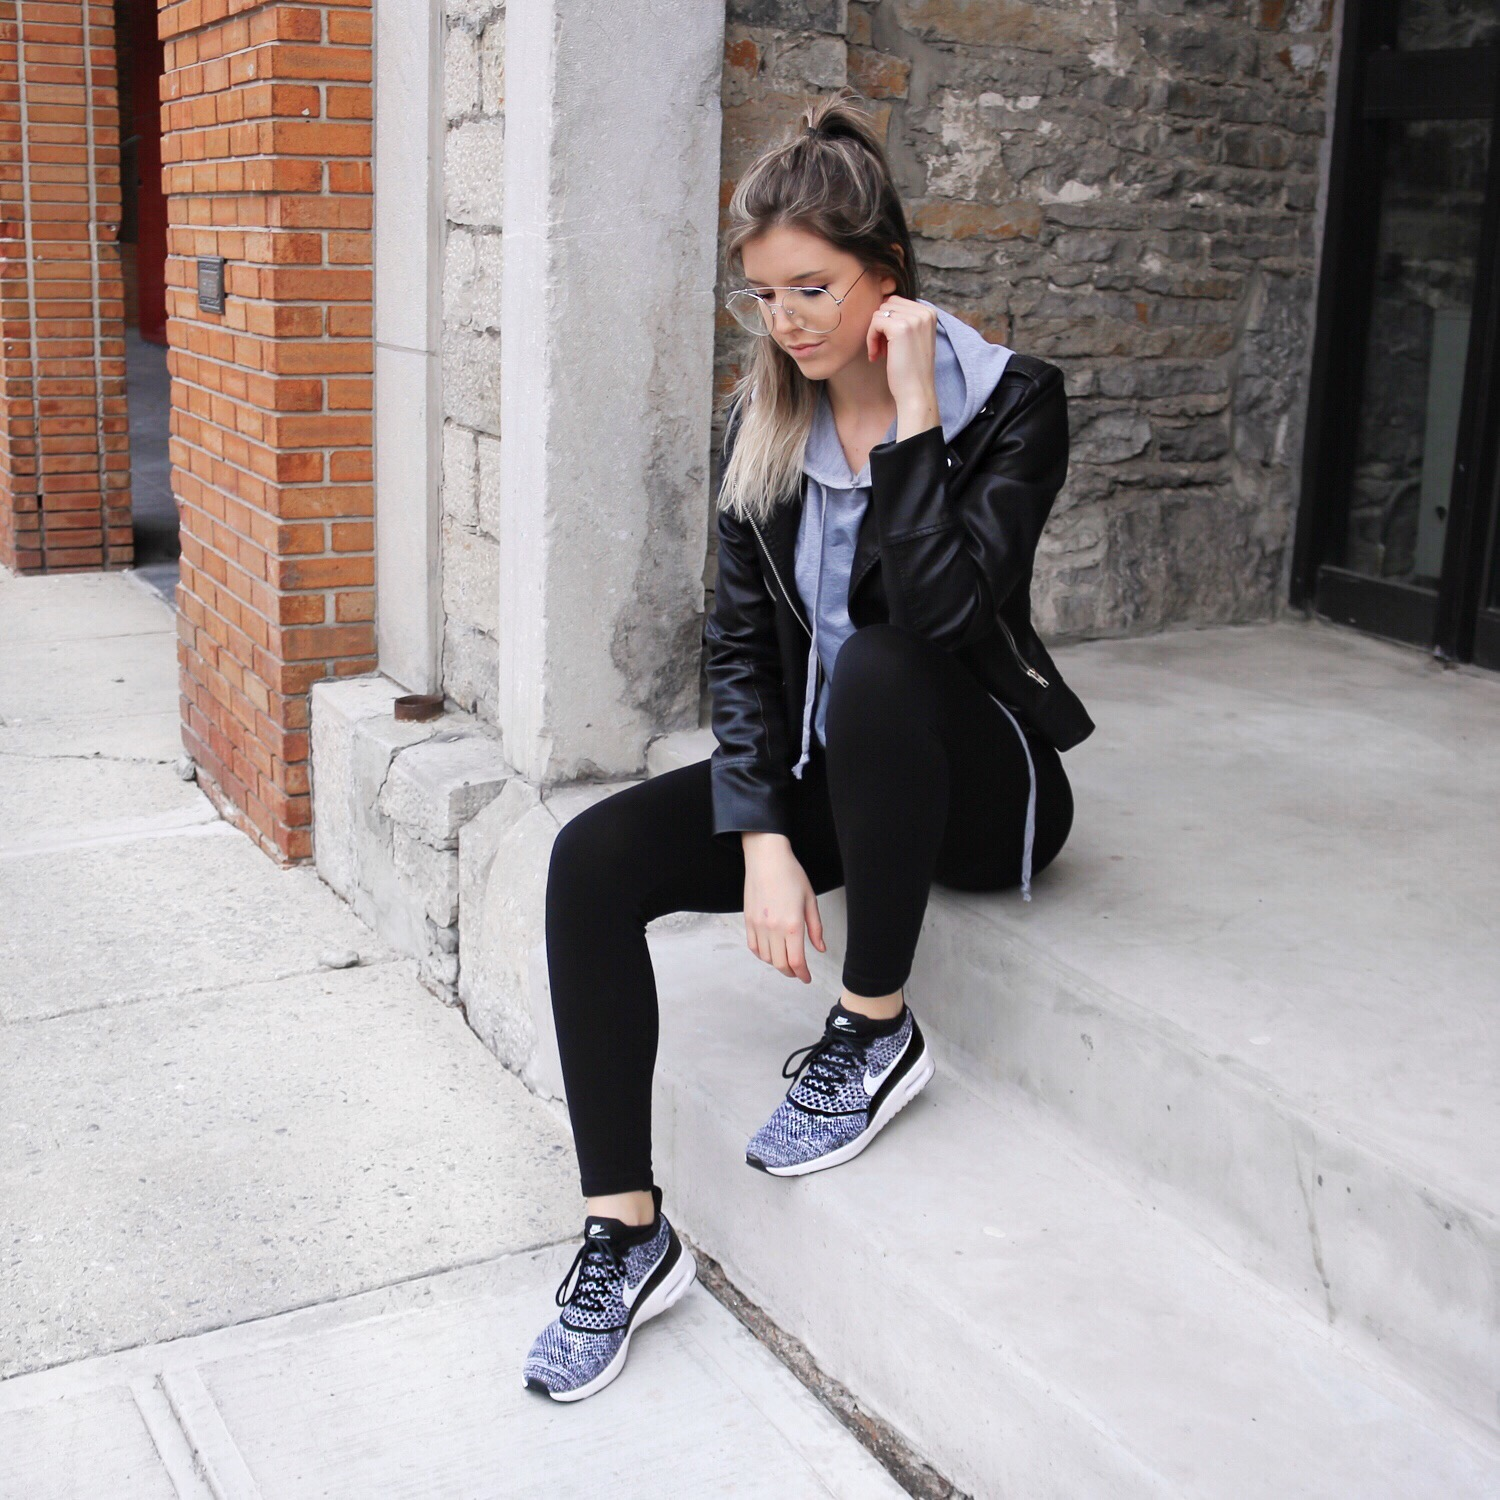 styling athleisure